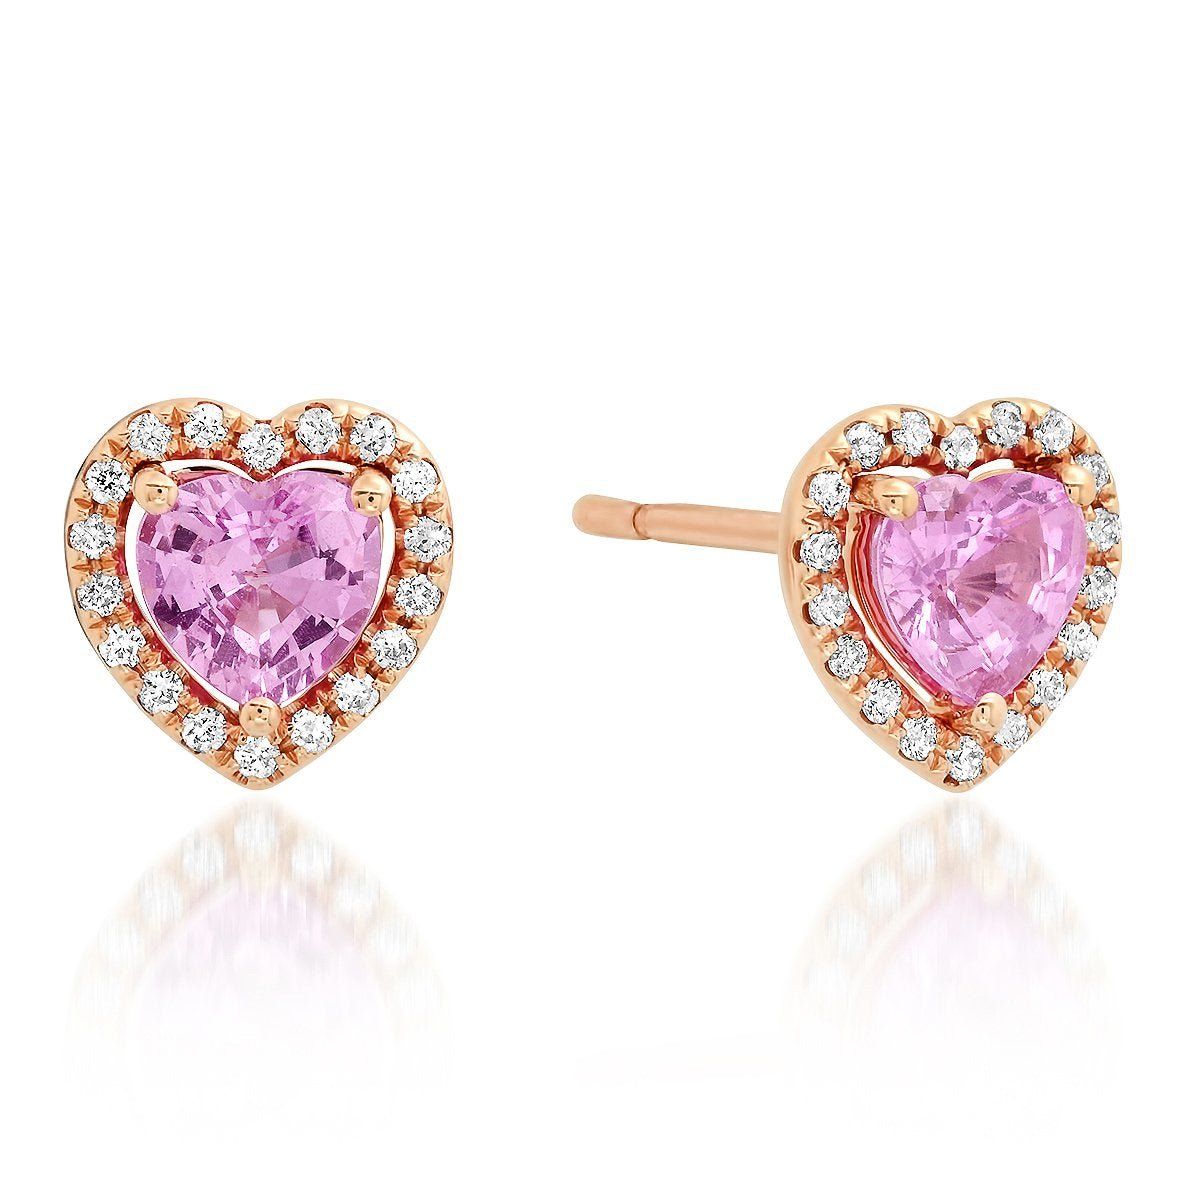 Pink Sapphire & Diamond Heart Stud Earrings